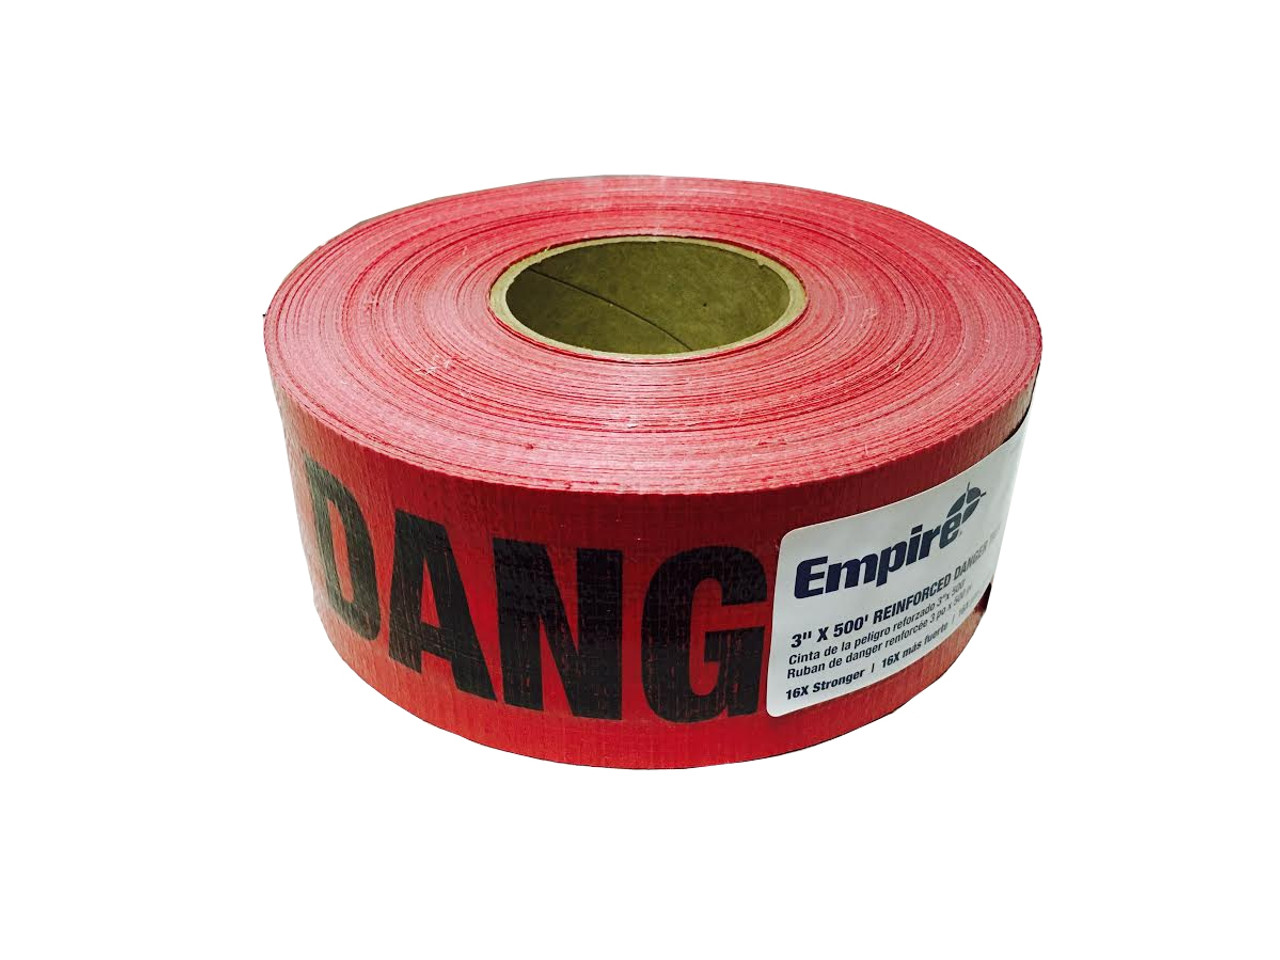 Empire 76-1004 Reinforced Danger Tape  Red 3 in. x 500 ft.